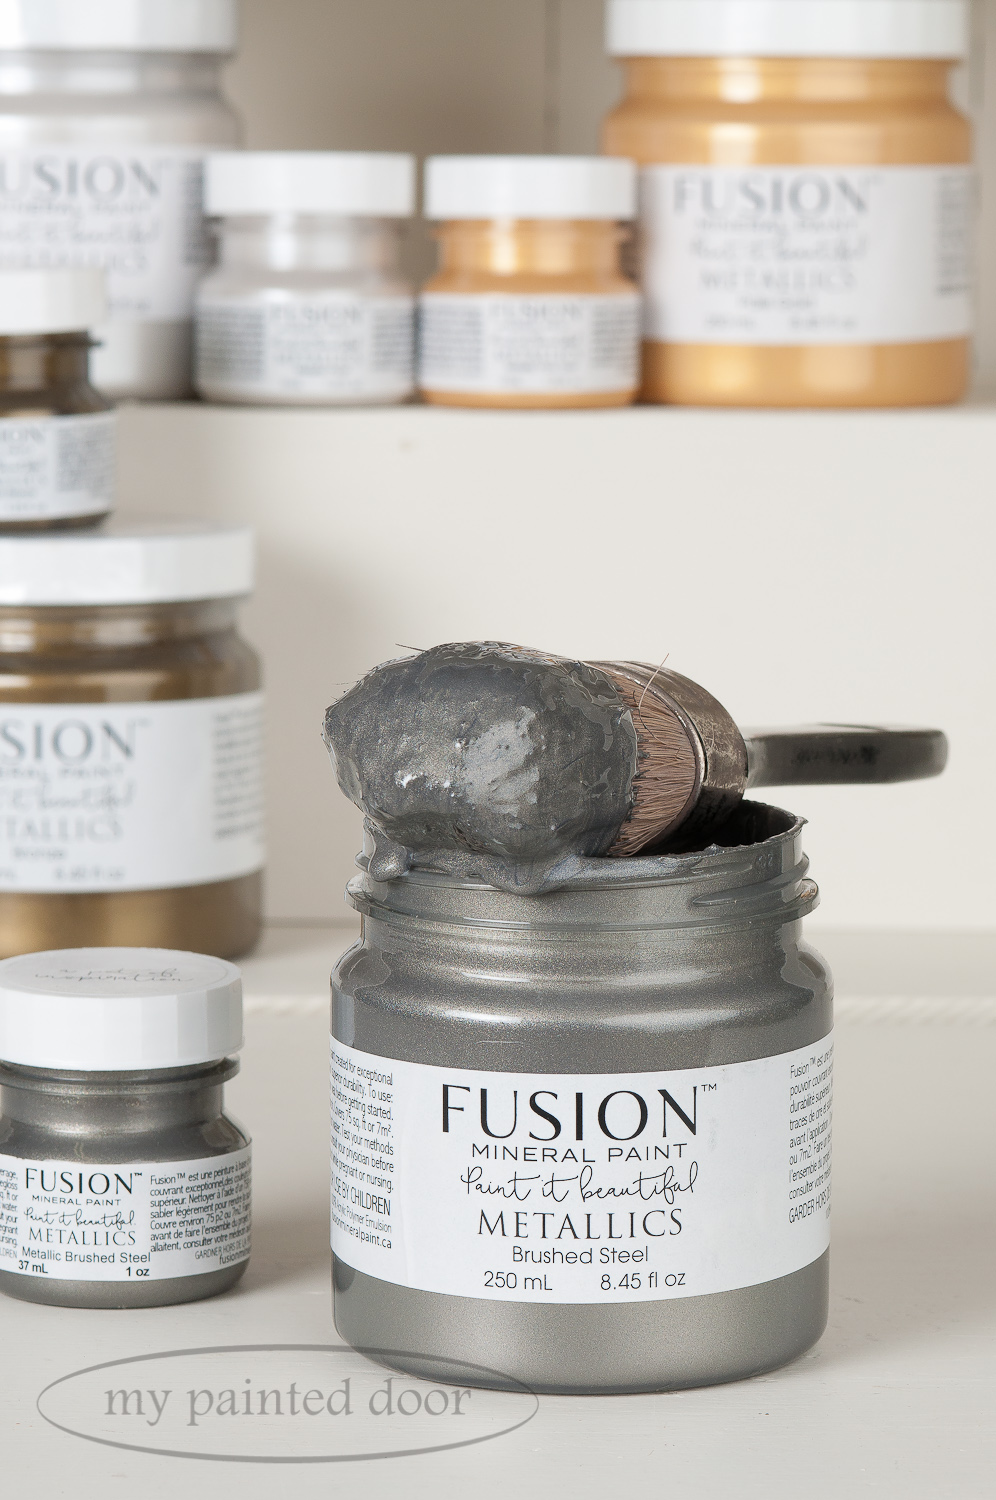 Fusion Mineral Paint Brushed Steel Metallic Paint. Available online at My Painted Door.